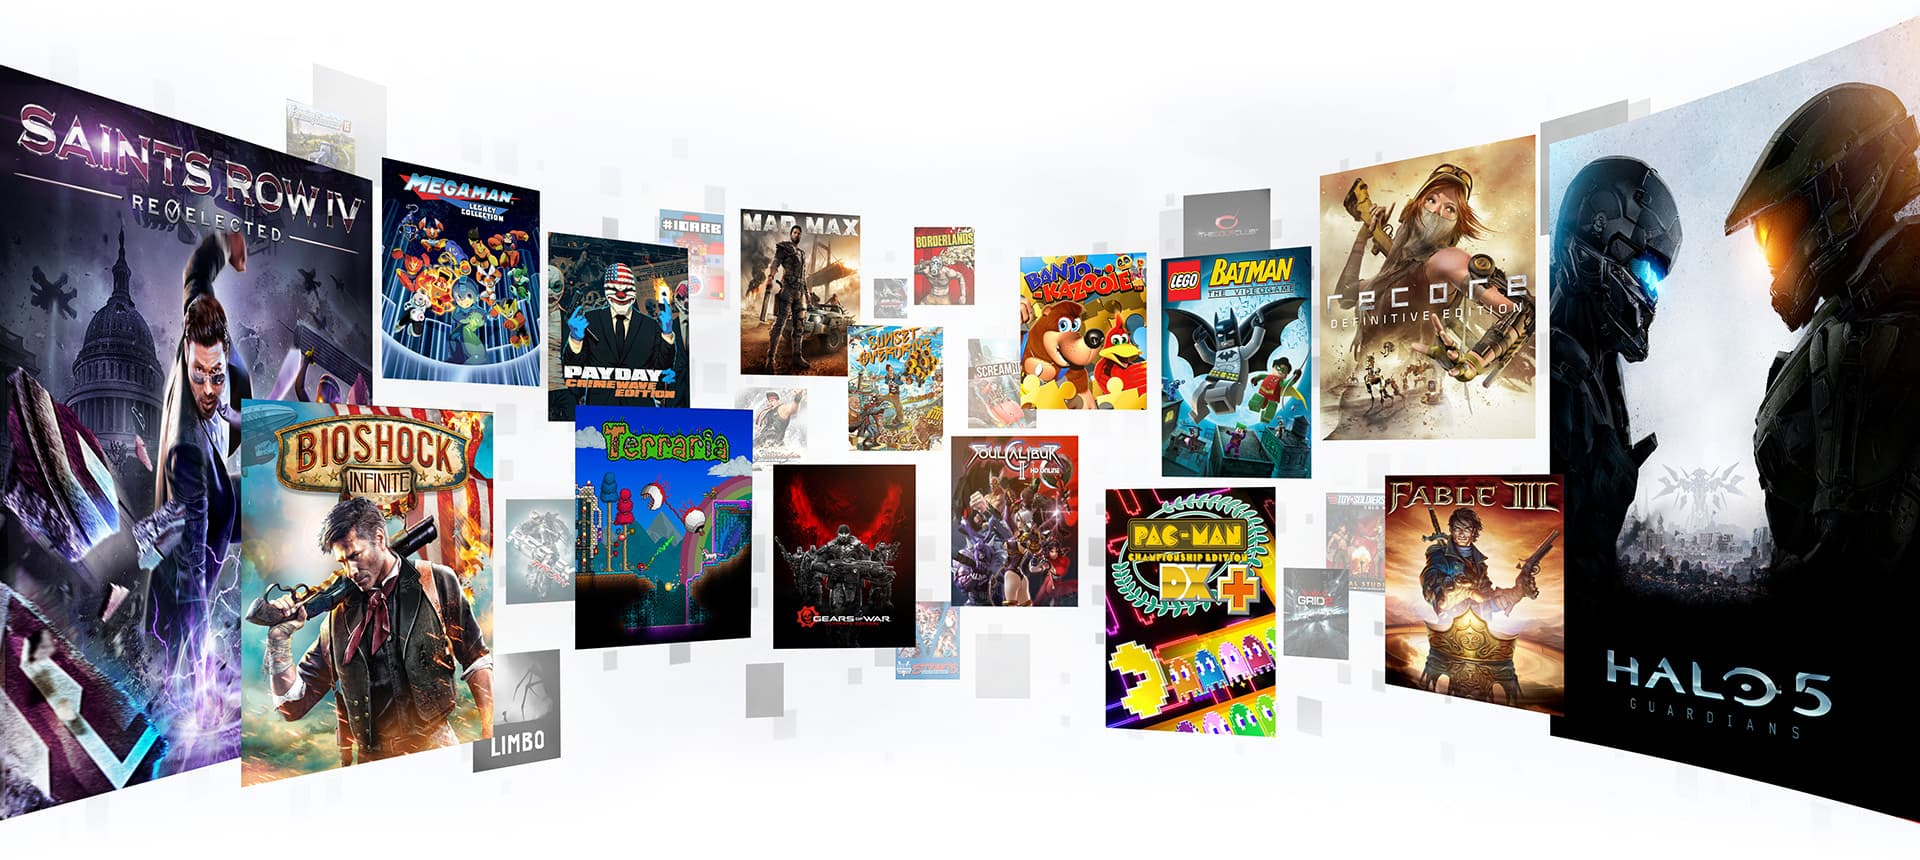 All New Xbox One Exclusive Games from Microsoft Studios Coming to Xbox Game Pass $9.99 per month/free 14 day trial